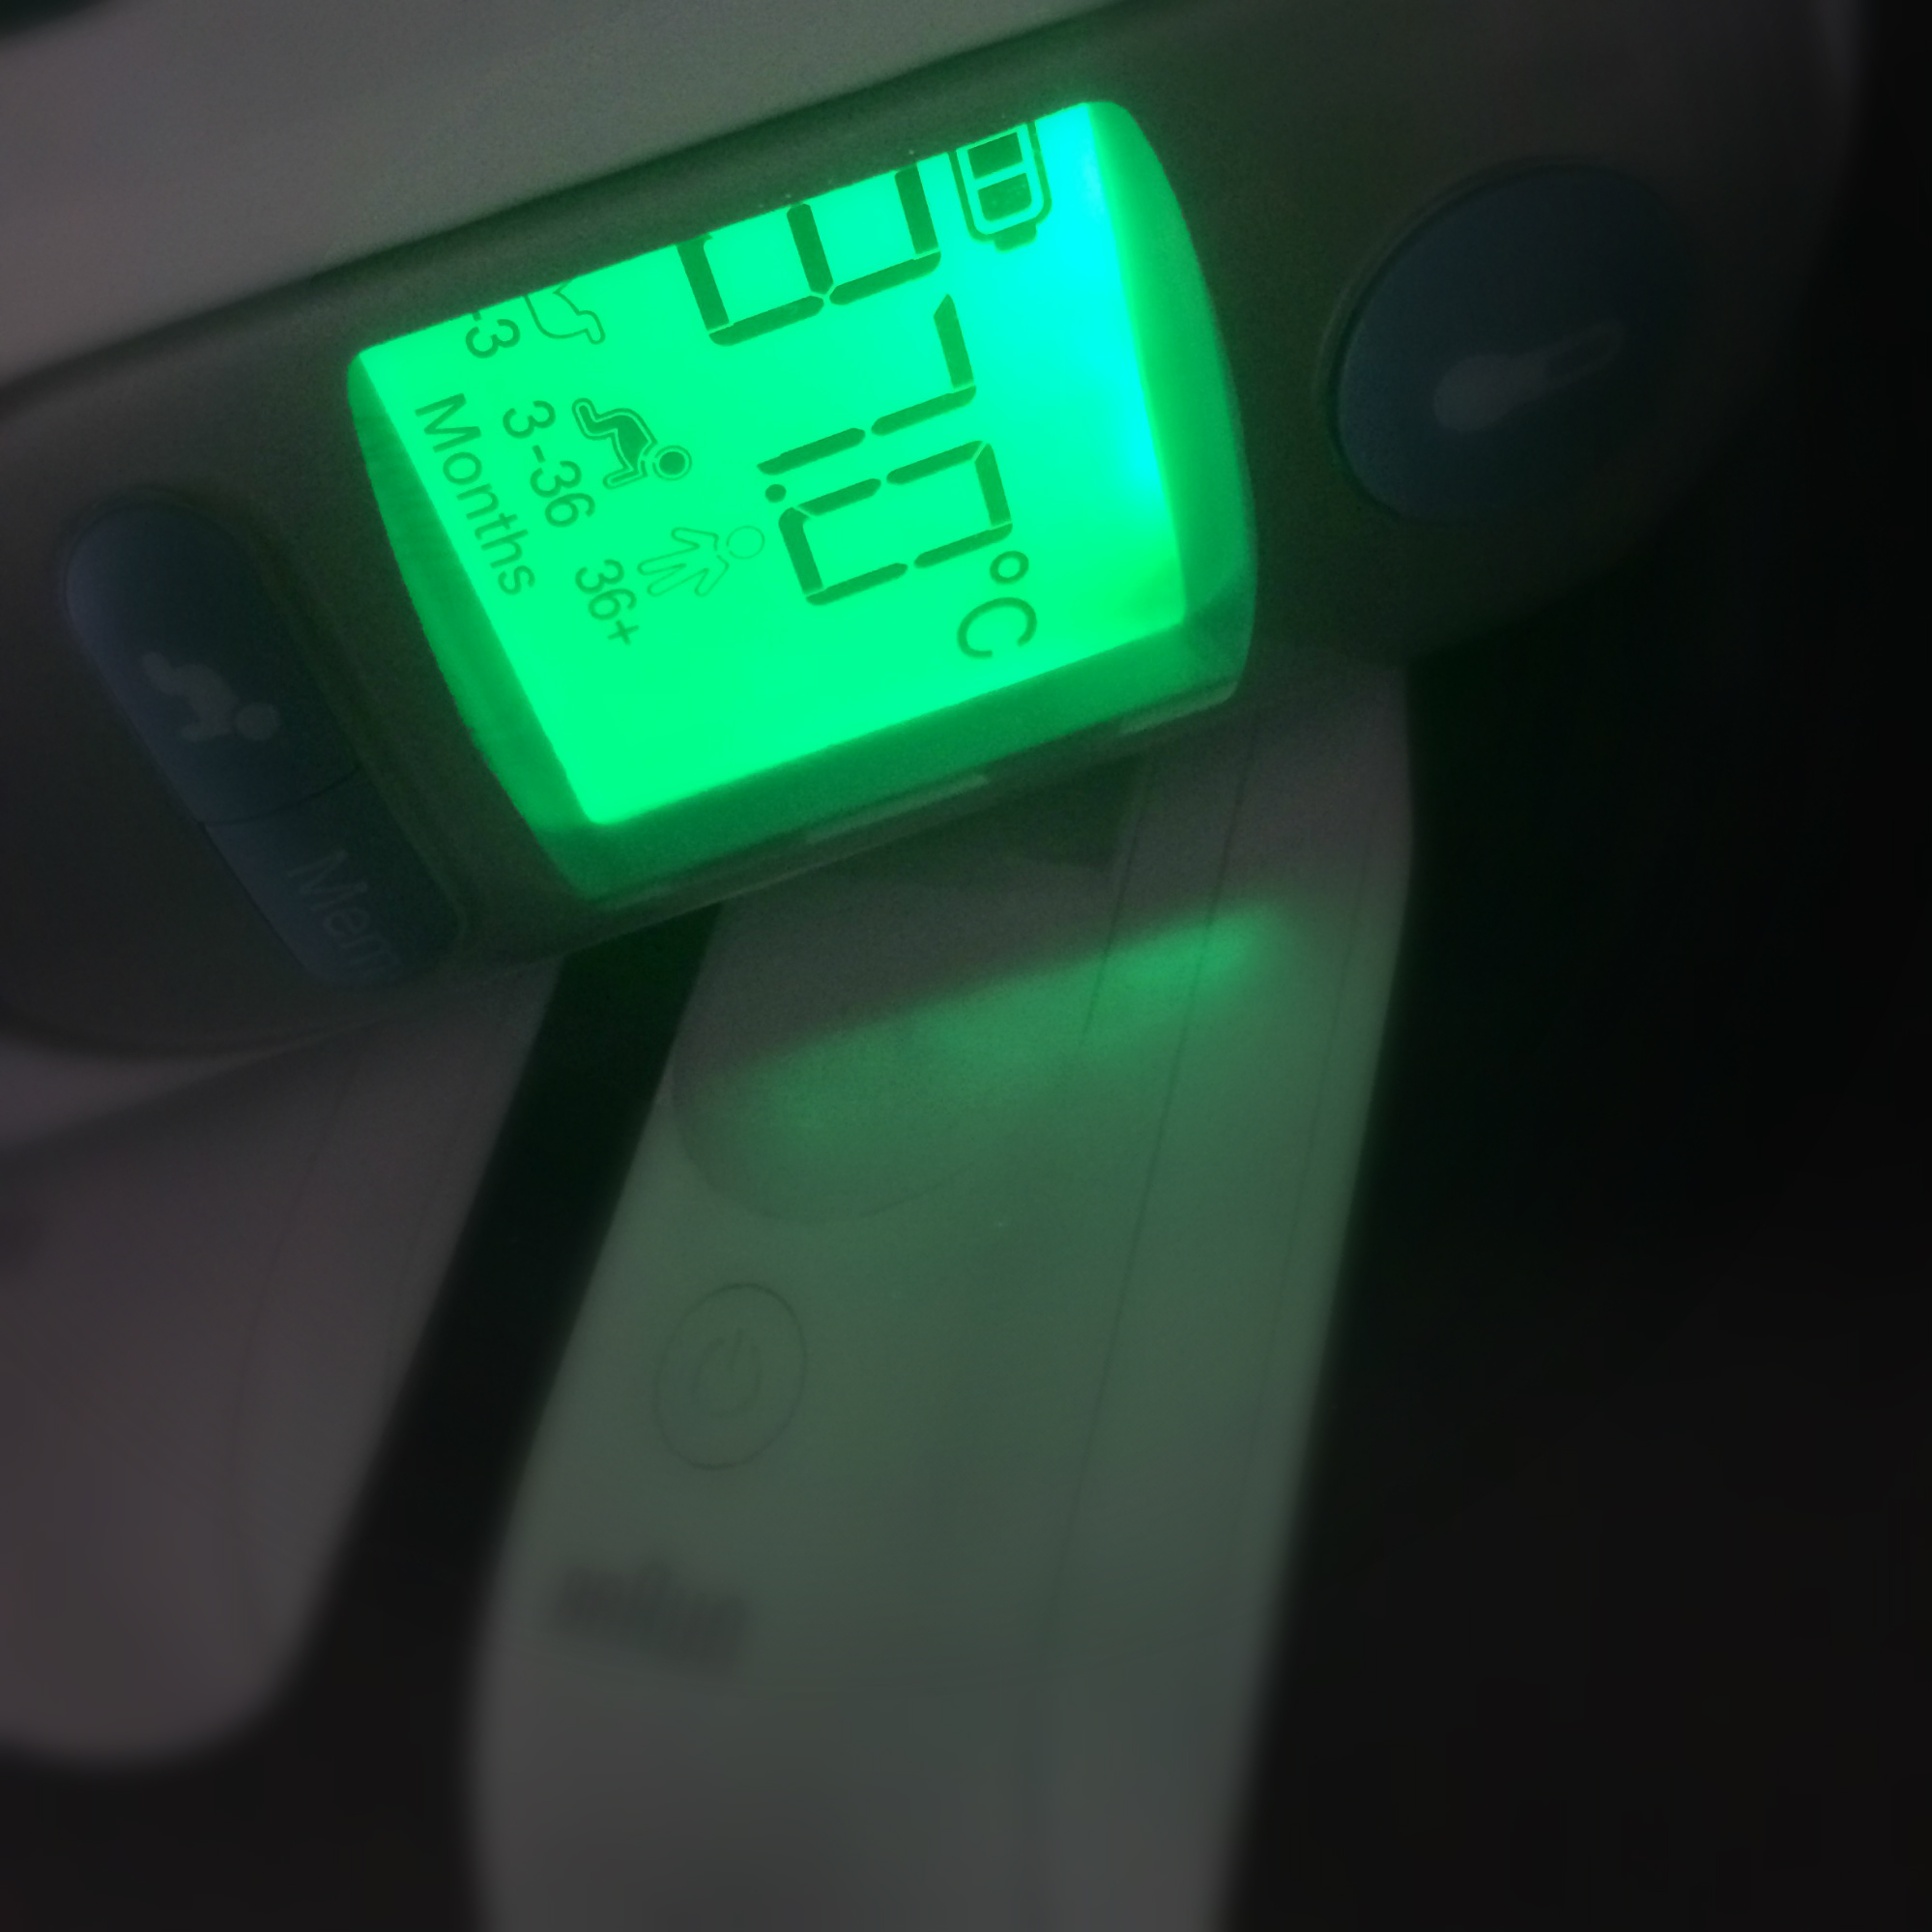 Braun ThermoScan 7 Ear Thermometer Review